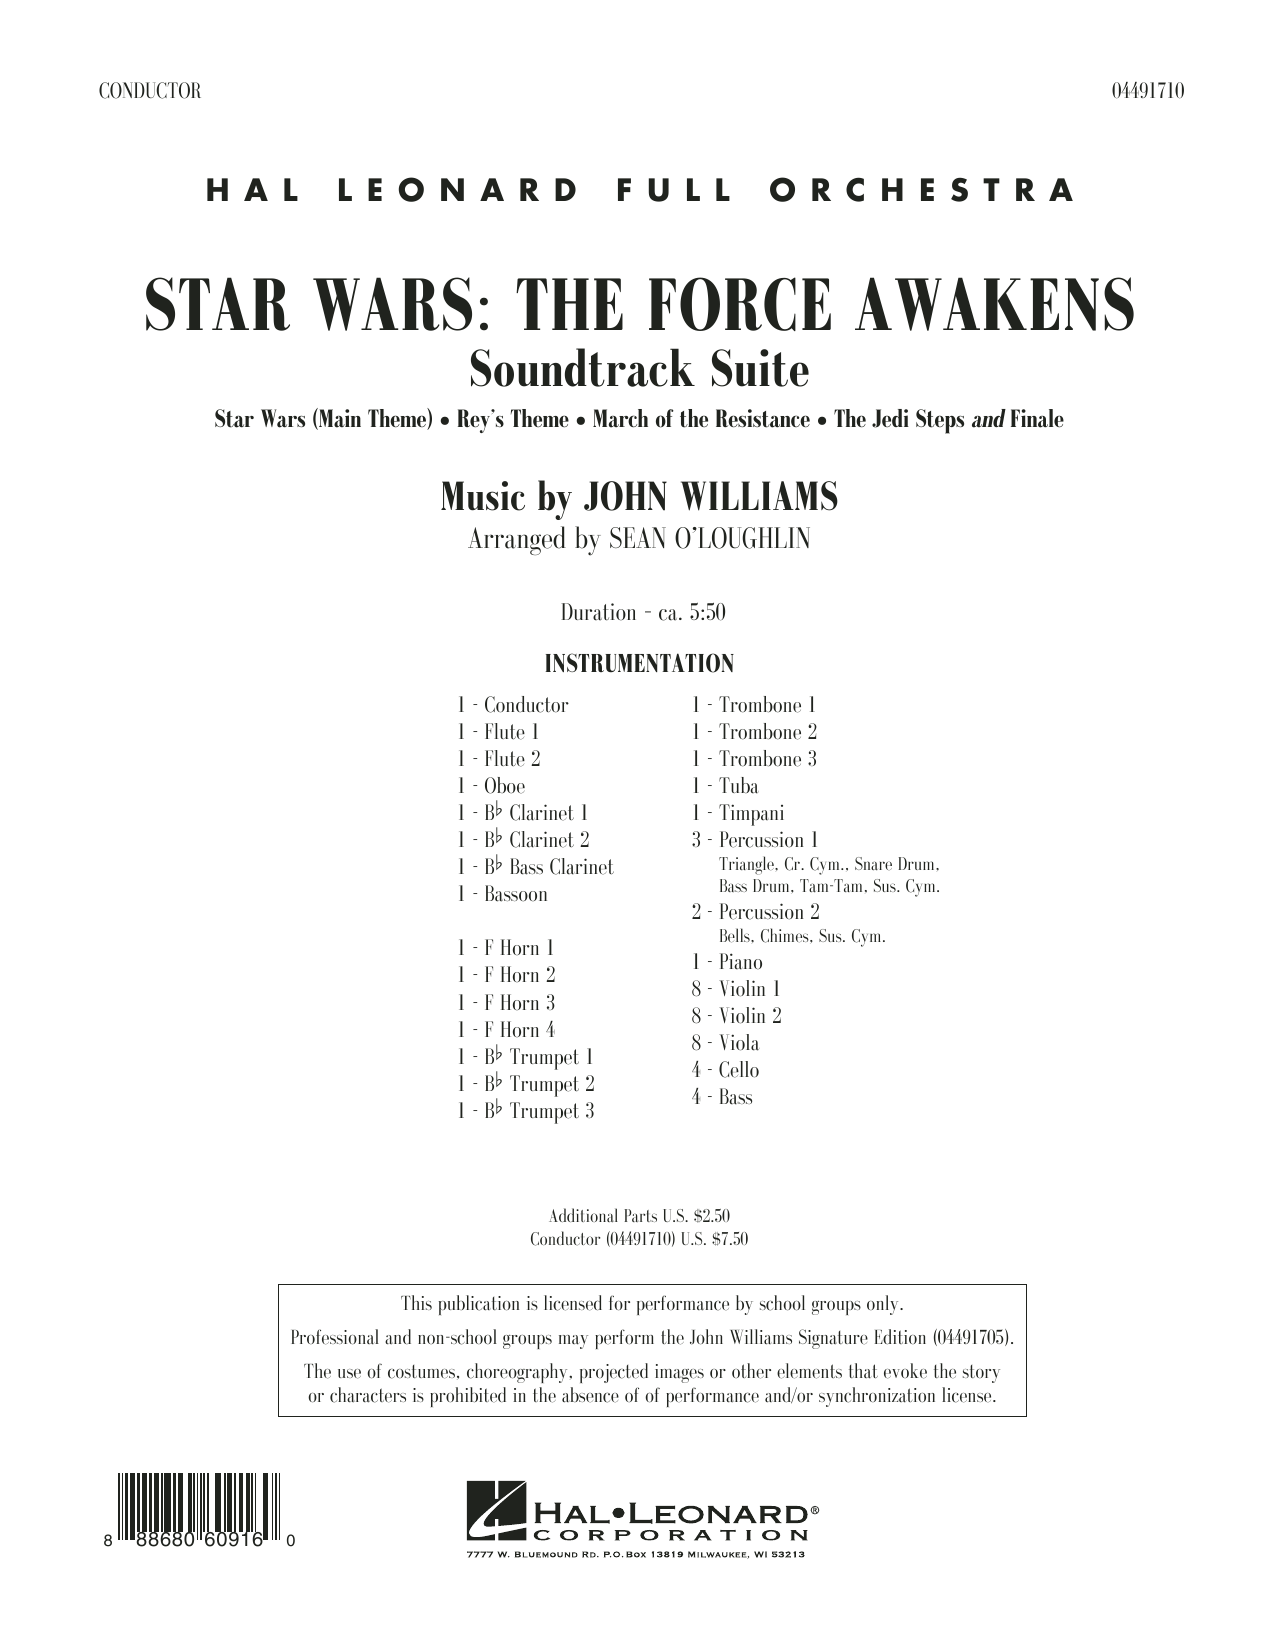 John Williams - Star Wars: The Force Awakens Soundtrack Suite - Conductor Score (Full Score)